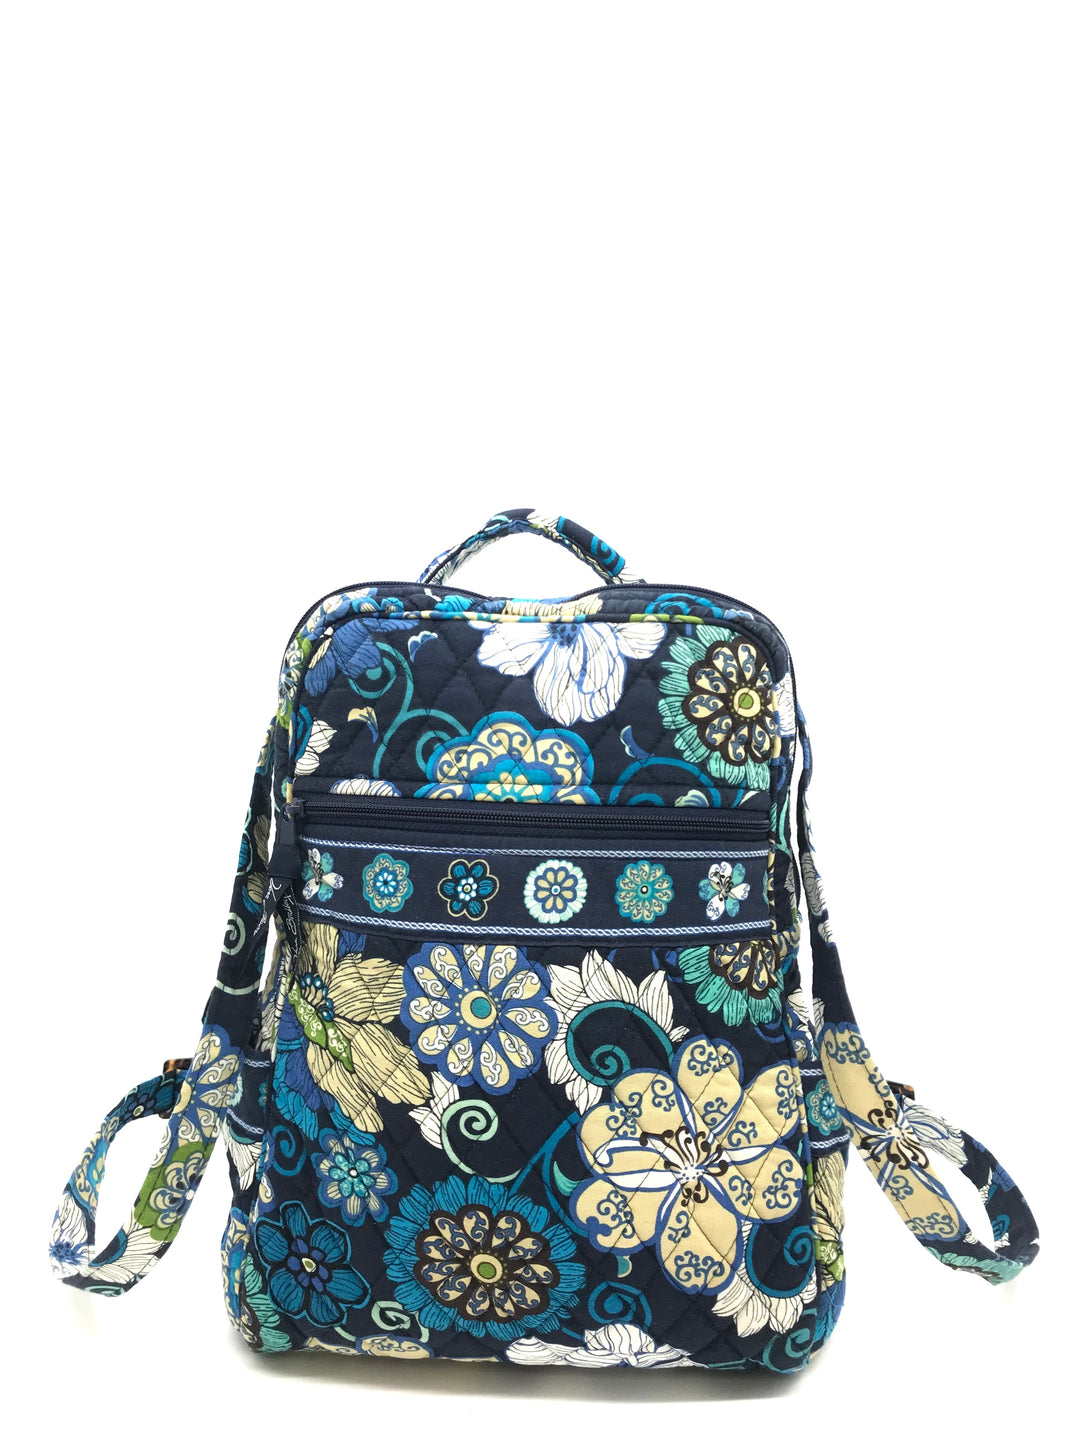 Primary Photo - BRAND: VERA BRADLEY <BR>STYLE: BACKPACK <BR>COLOR: MULTI <BR>SIZE: SMALL <BR>SKU: 262-26275-70882<BR>AS IS